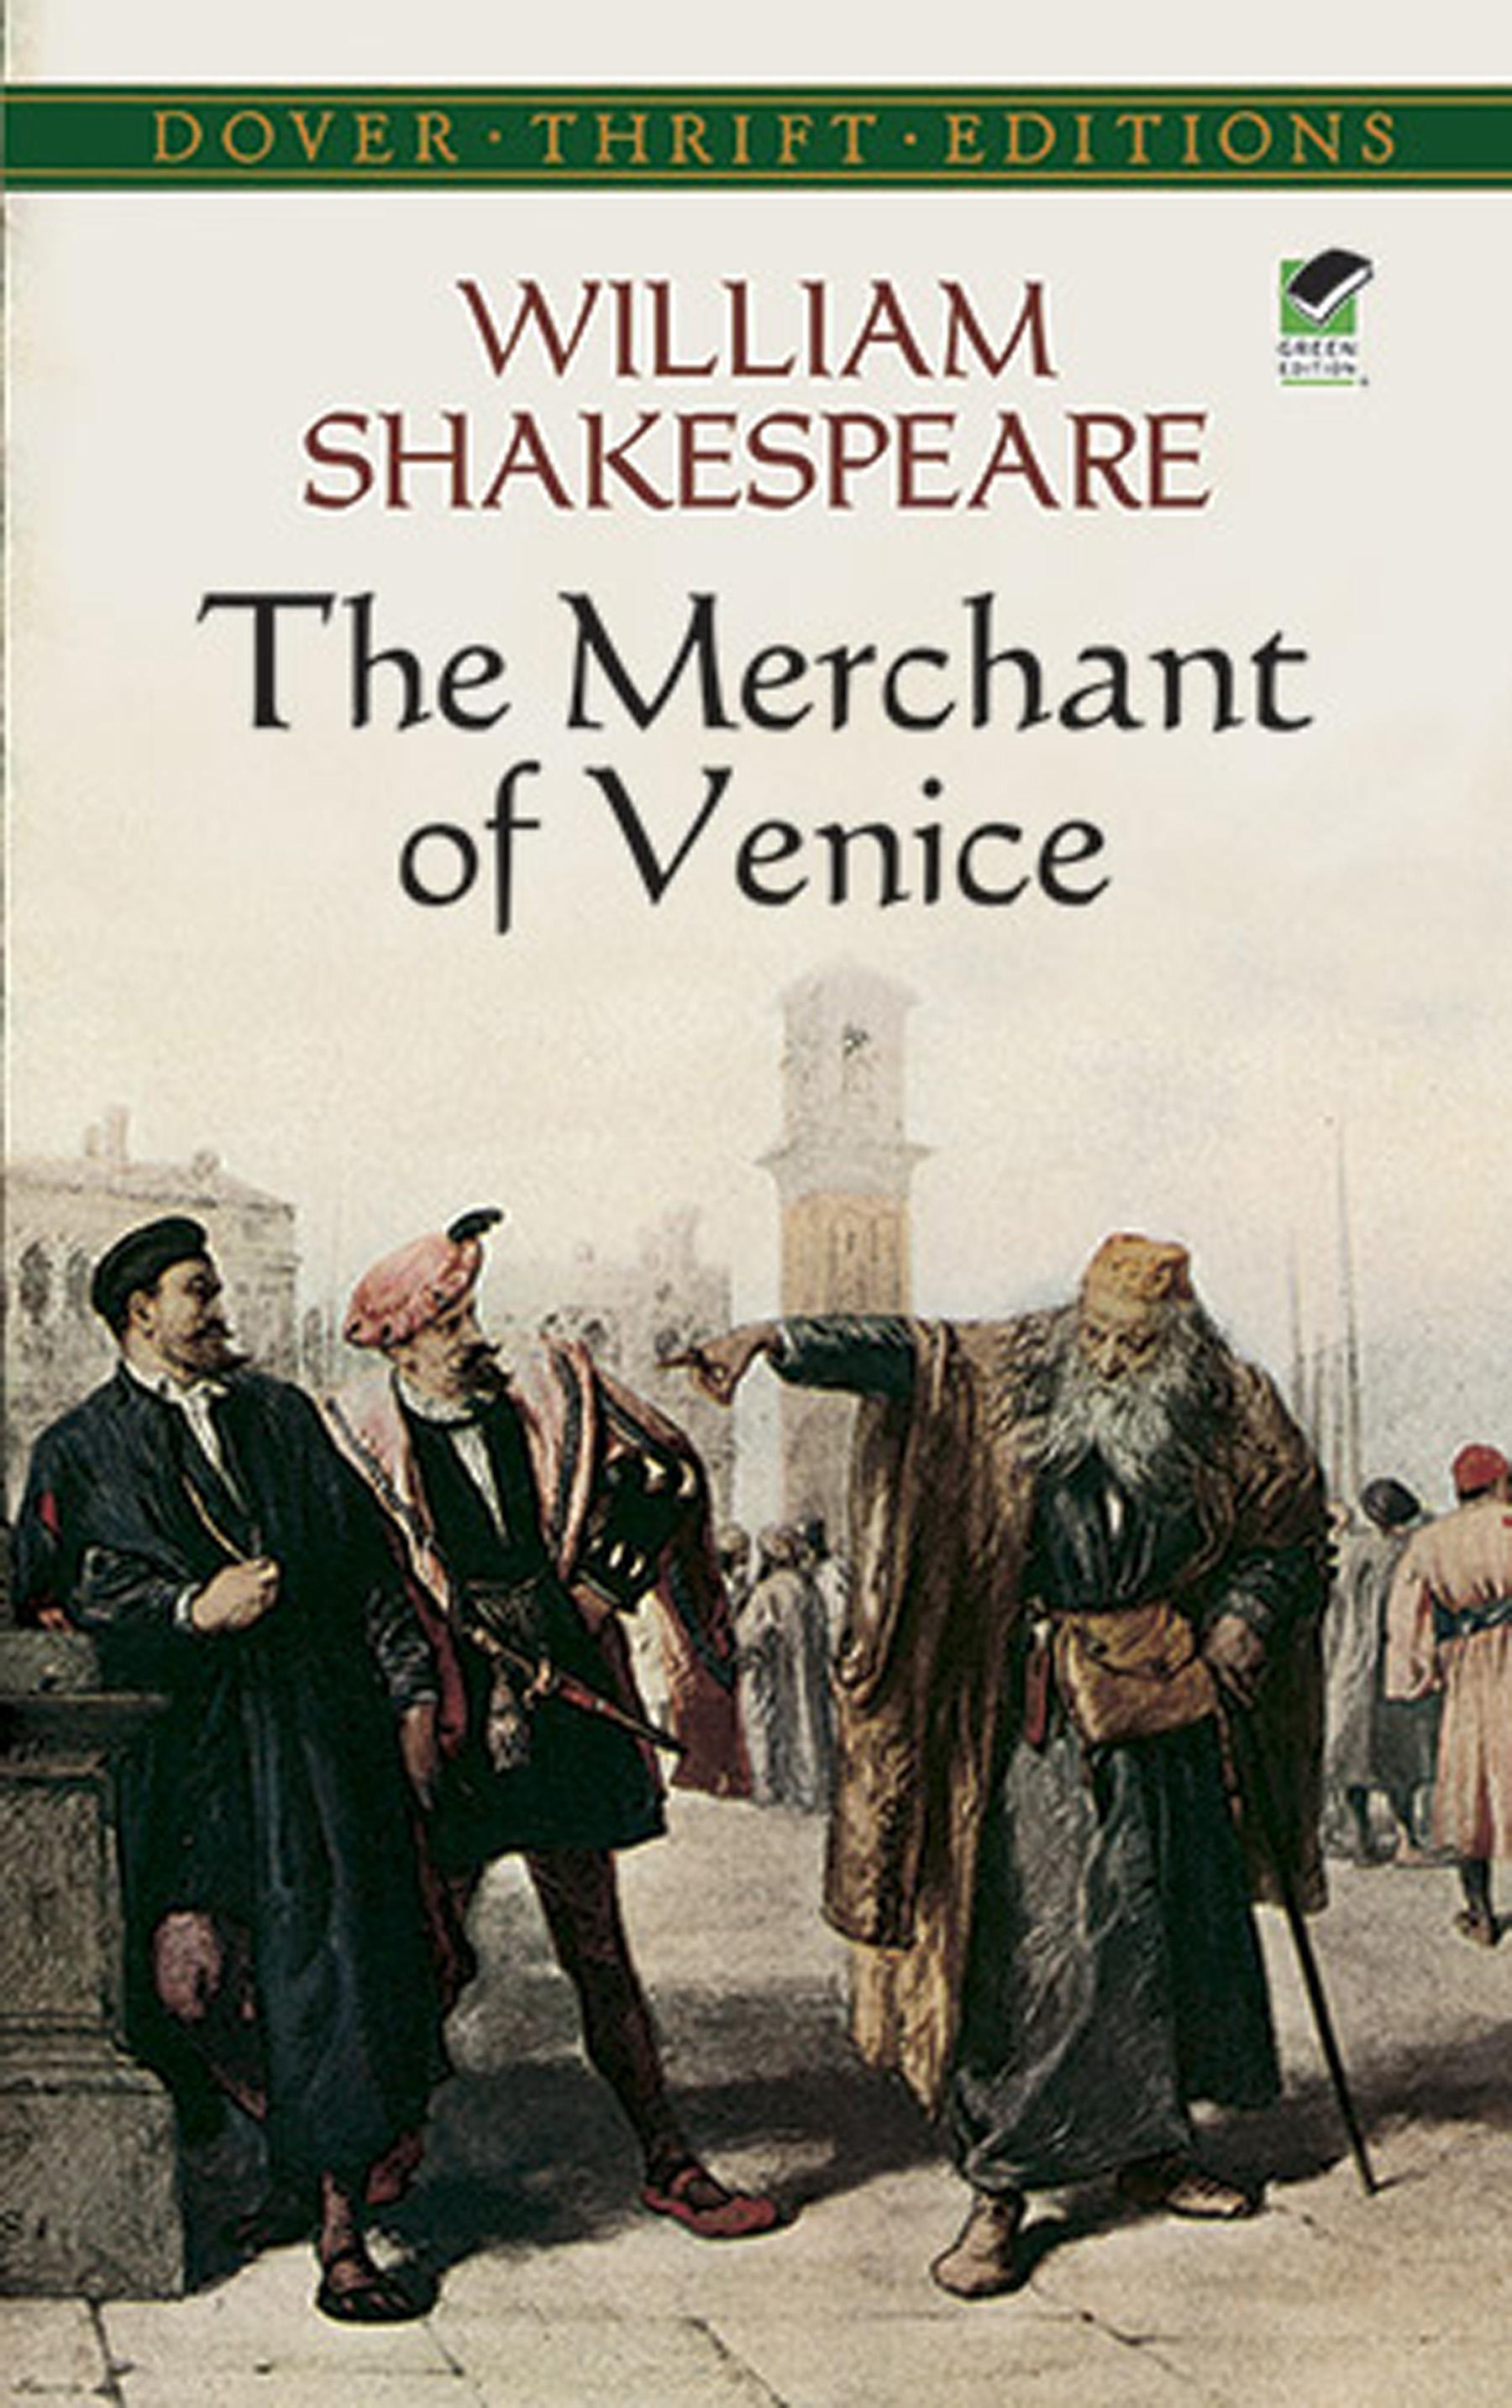 an overview of the role of prejudice in the merchant of venice a play by william shakespeare The william shakespeare experience is a virtual book club, the goal of which is to read and discuss each of shakespeare's plays in the approximate order that he wrote them.